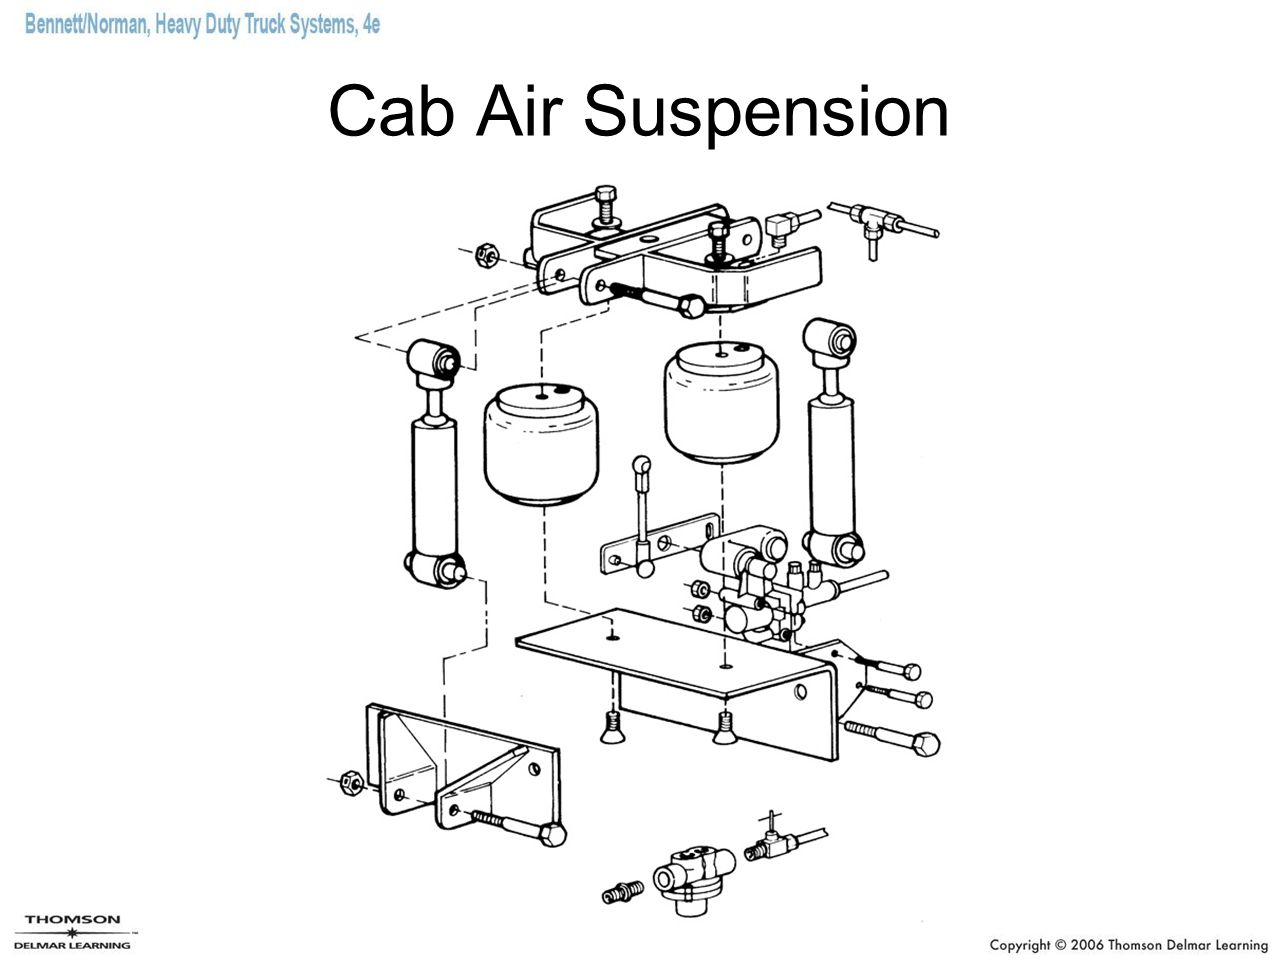 Chapter 26 Suspension Systems Ppt Video Online Download Air Schematic 46 Cab